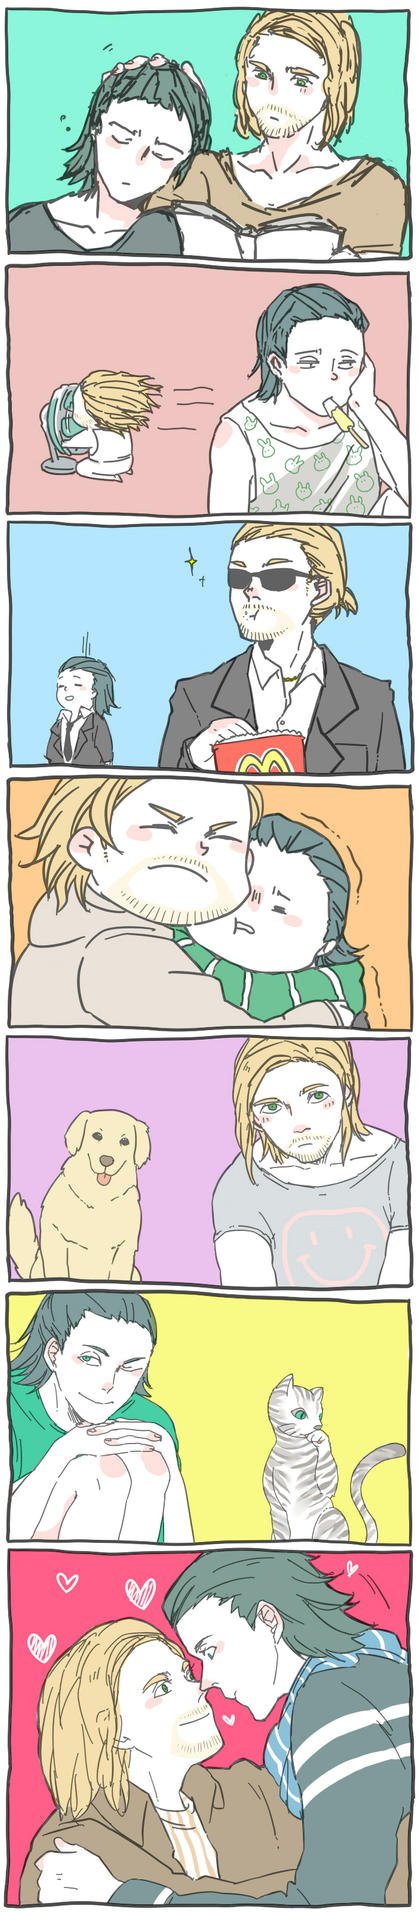 Still Thorki by hammer-in-my-pants